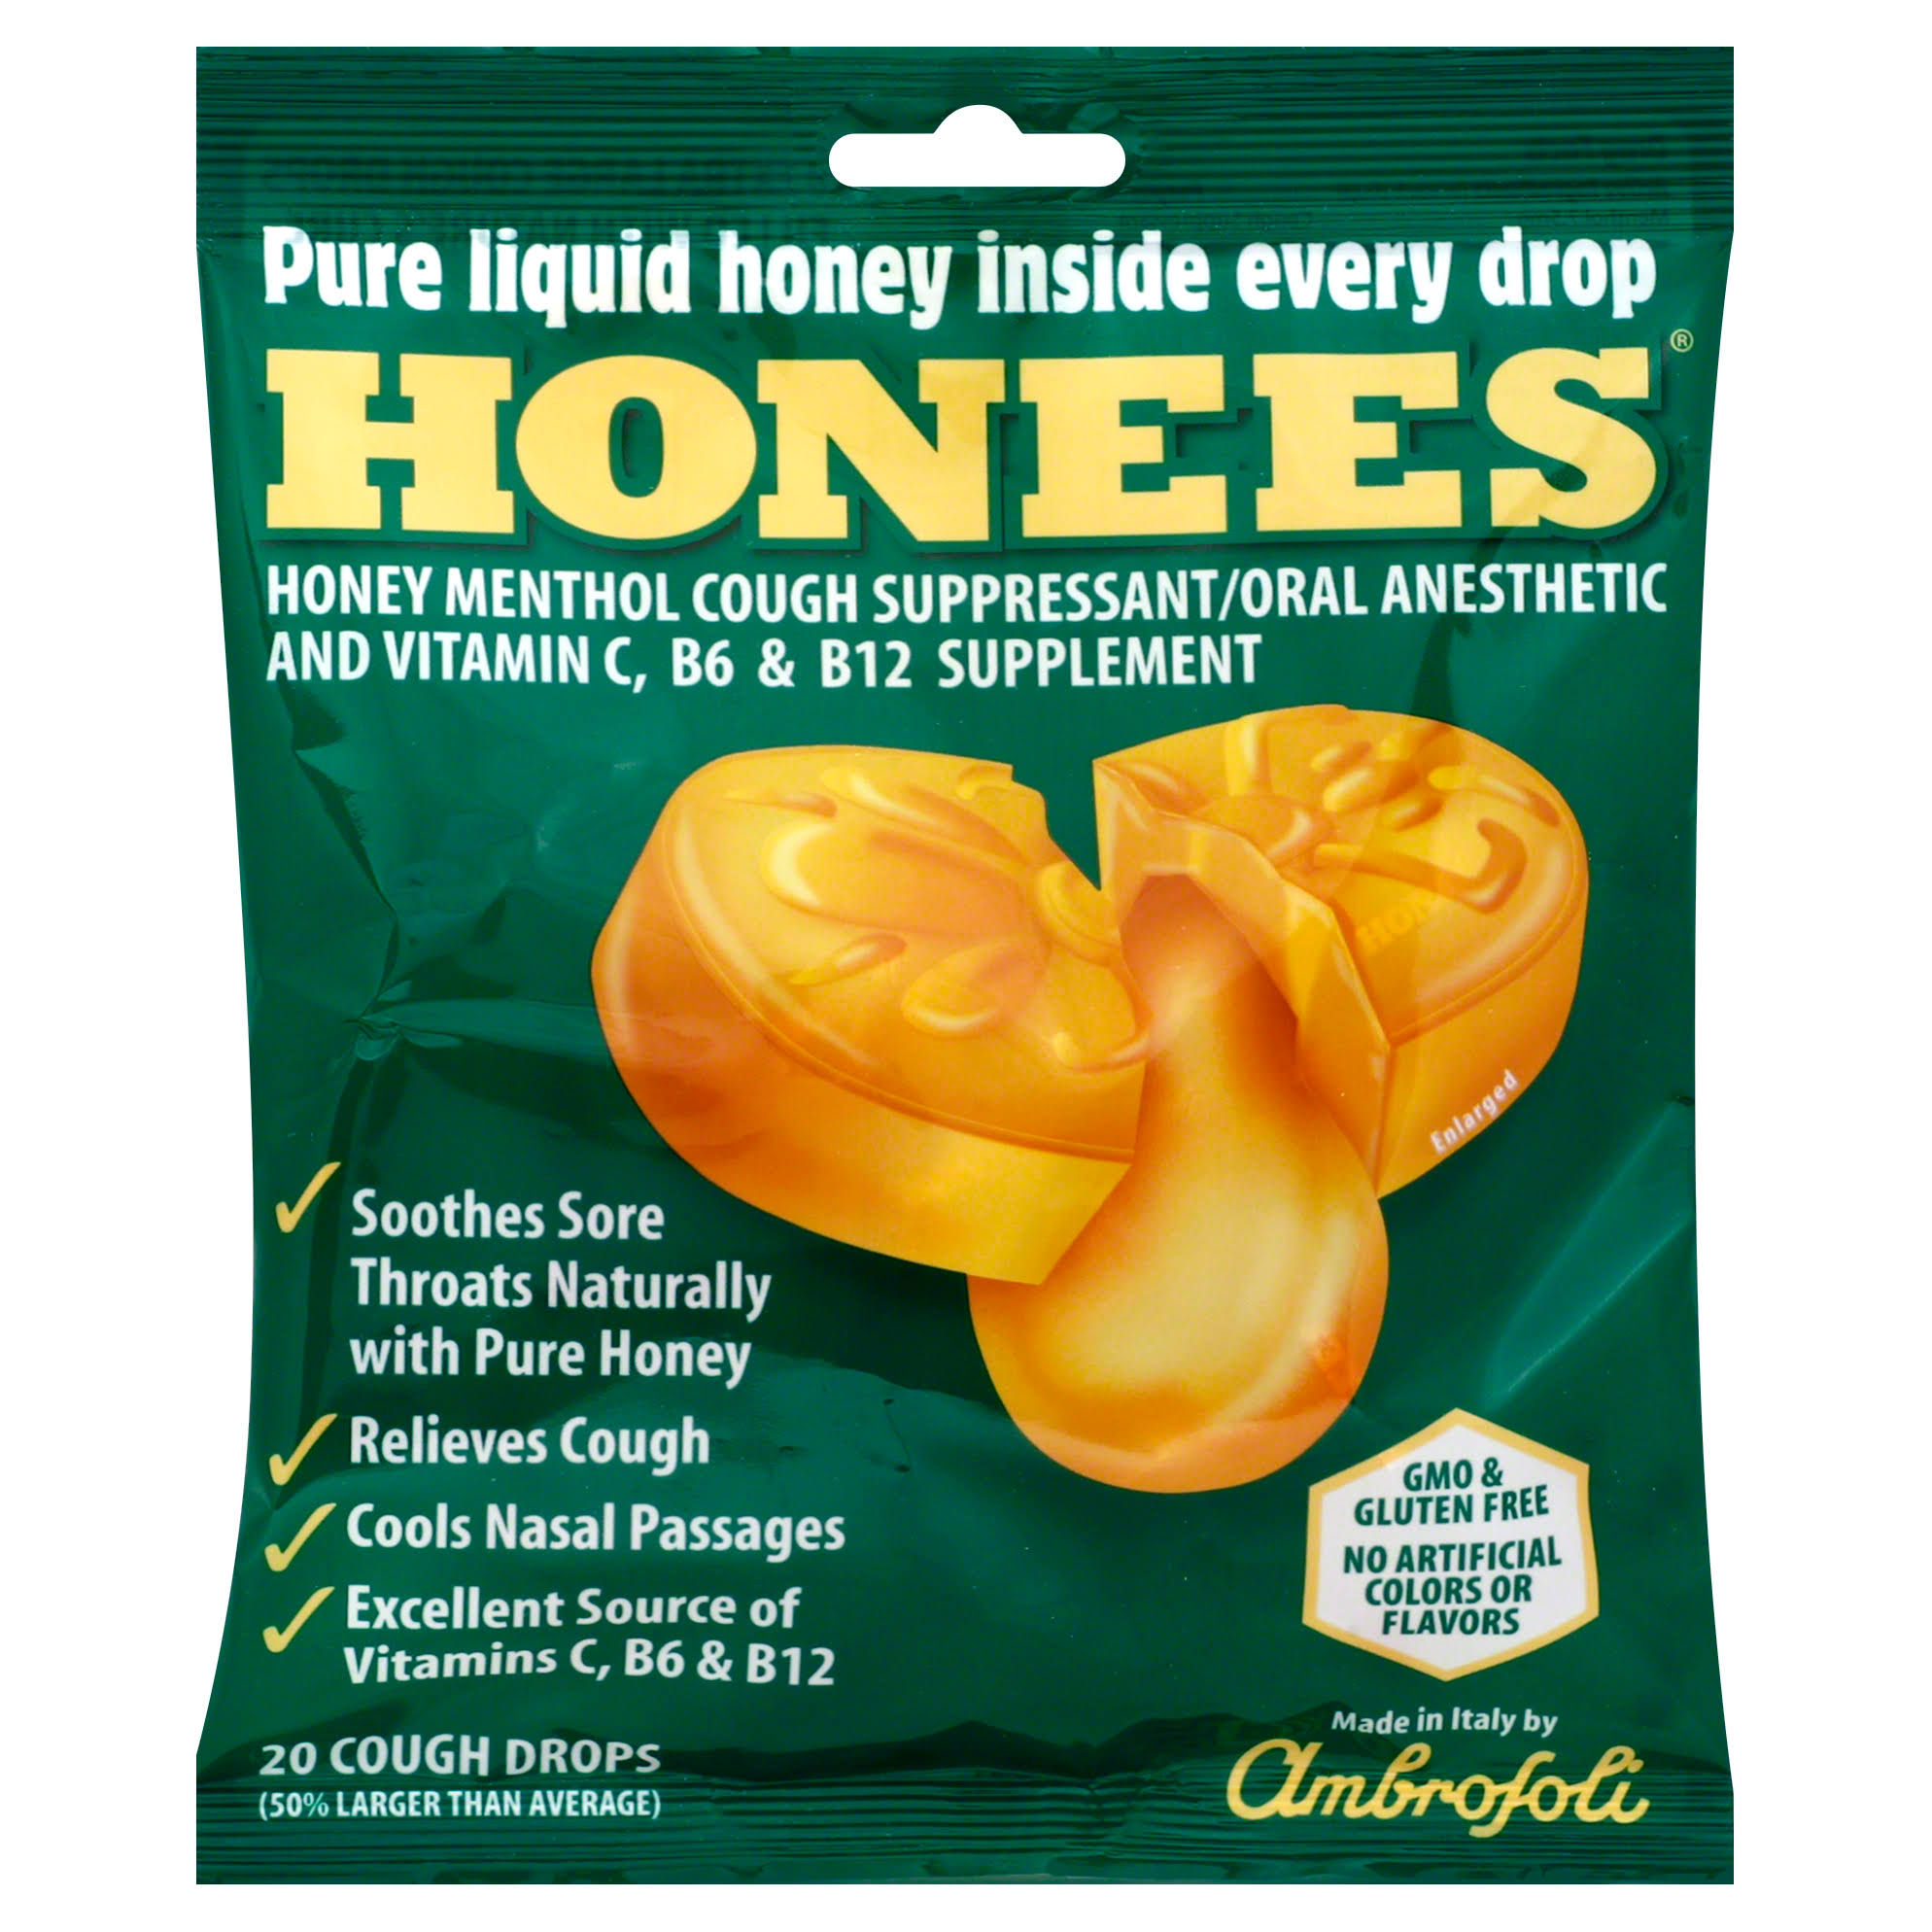 Honees Original Honey Menthol Cough Drops - 20ct